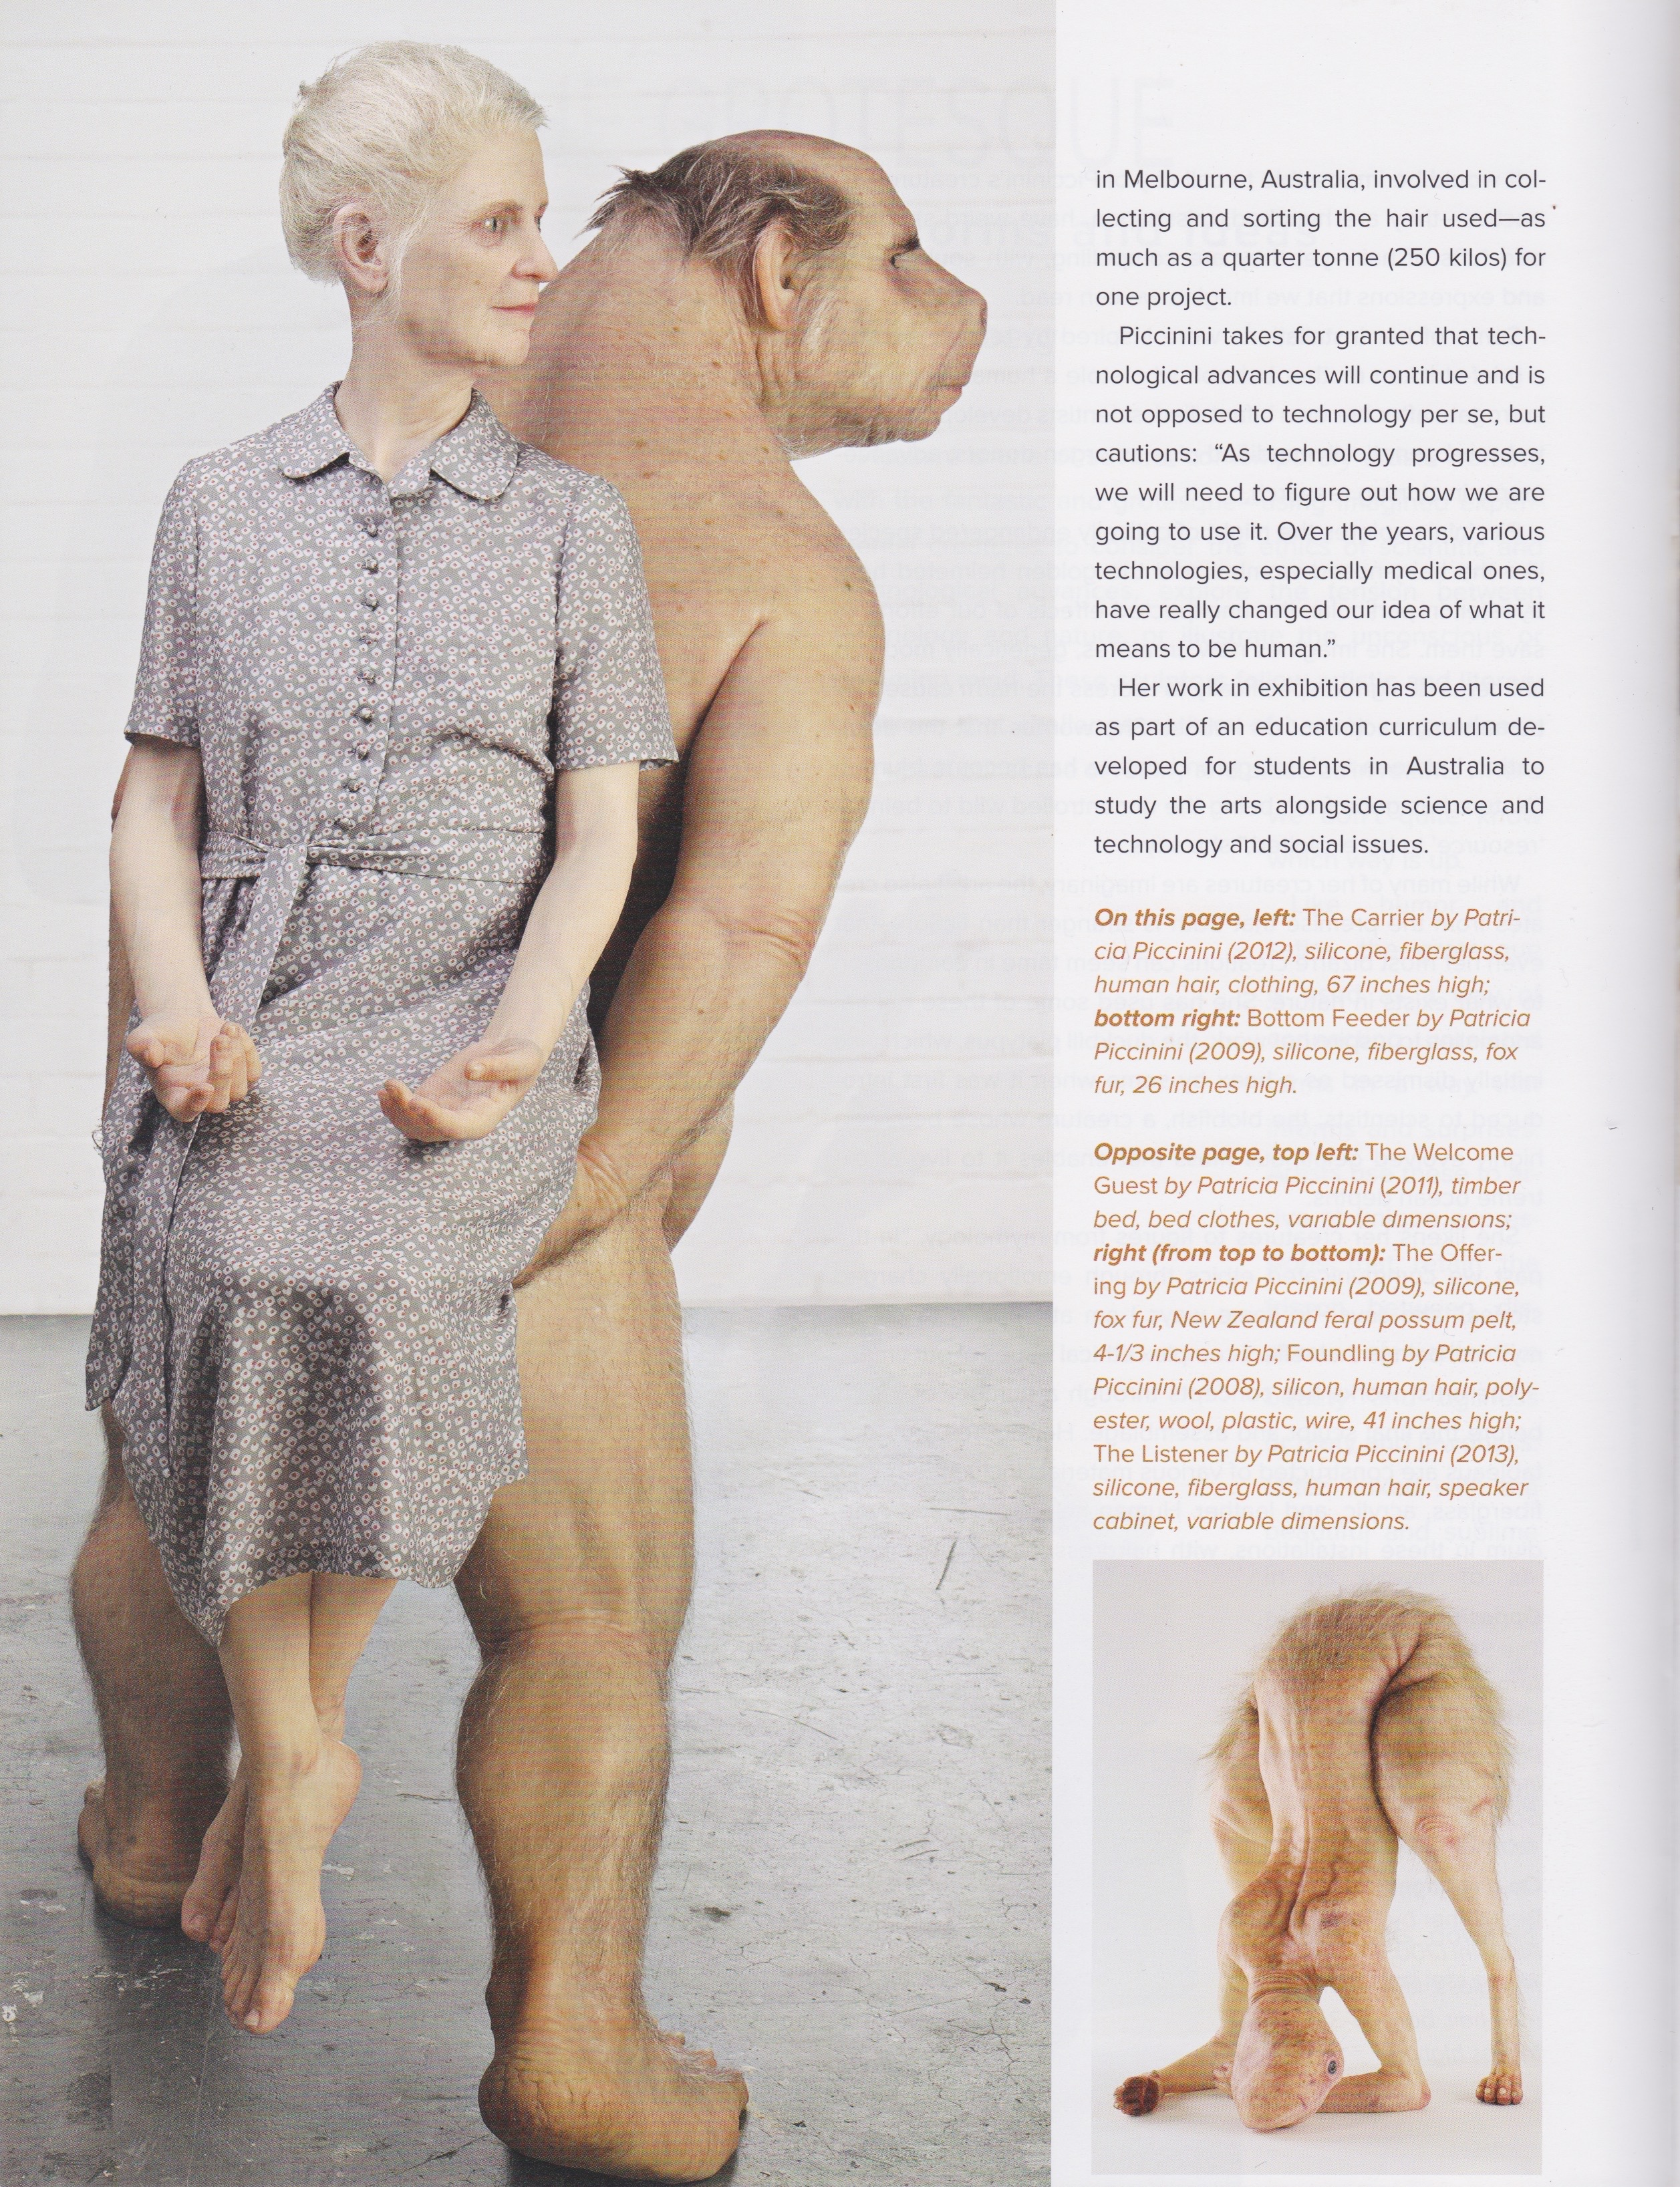 SculptureRevMag_04 - 1